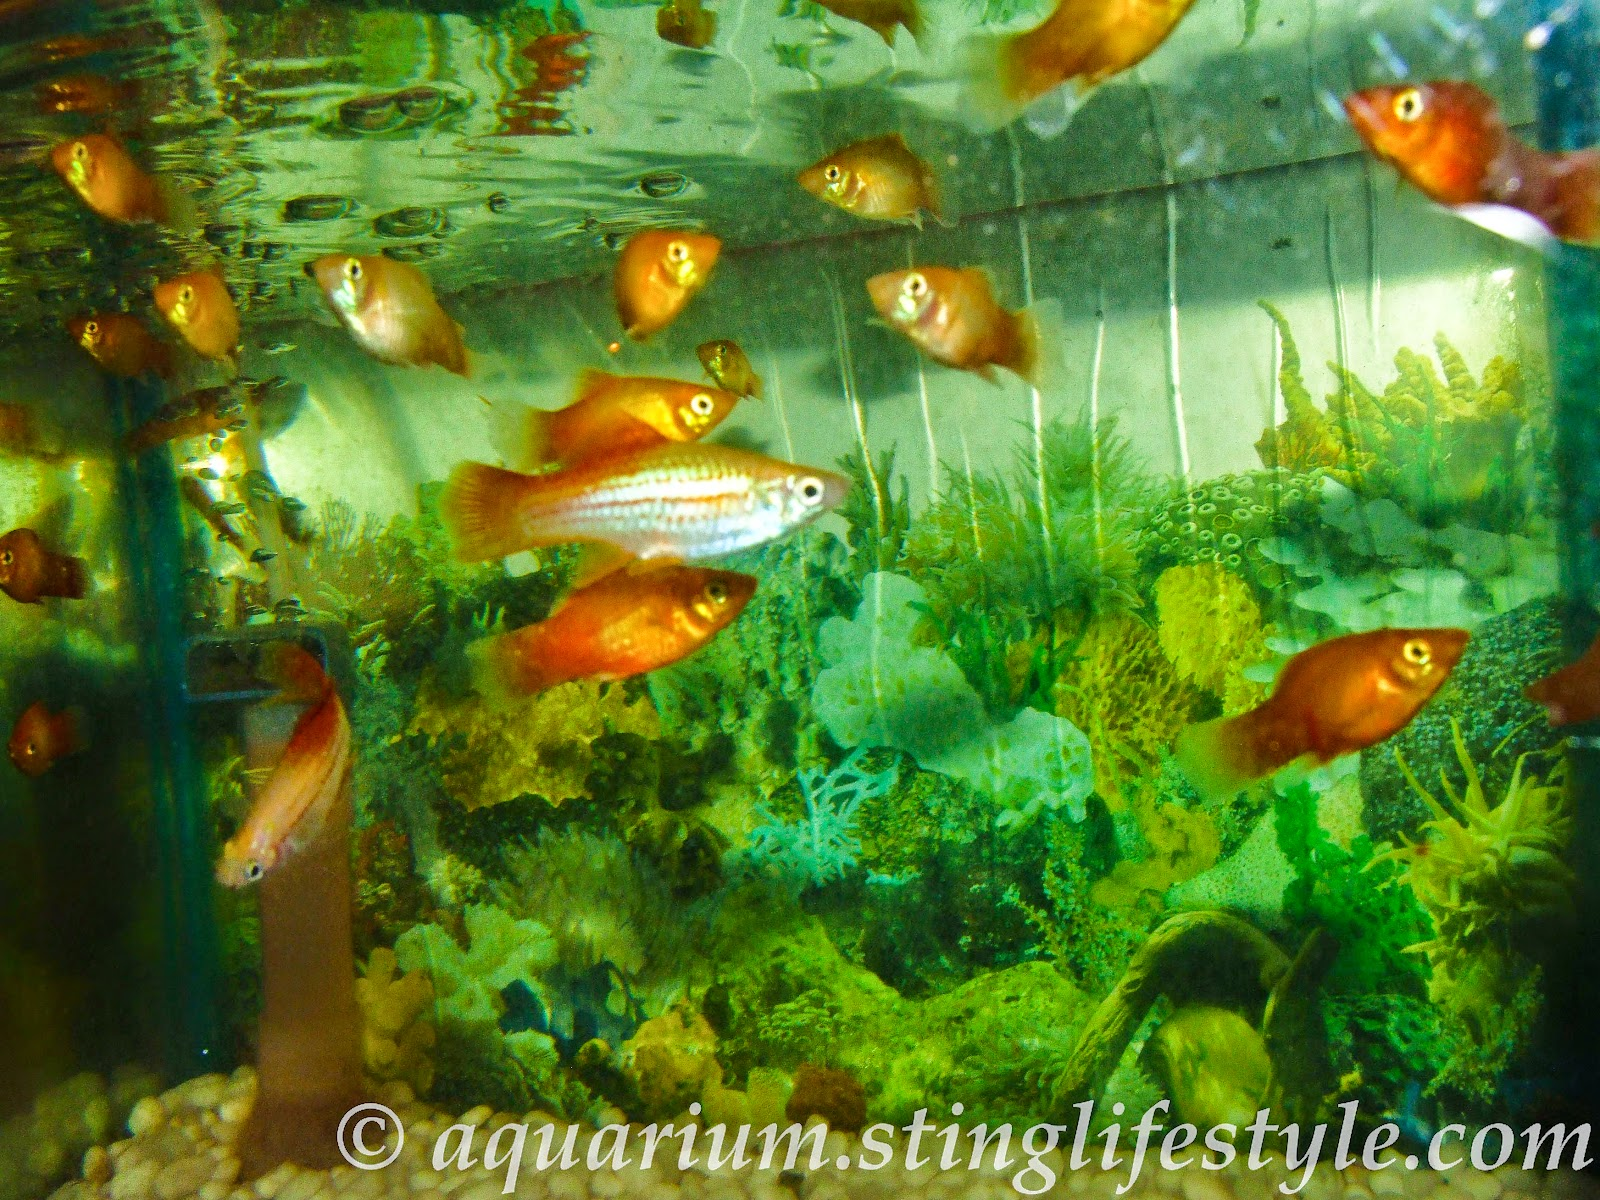 Platy fish pictures aquarium info for Aquarium fish online